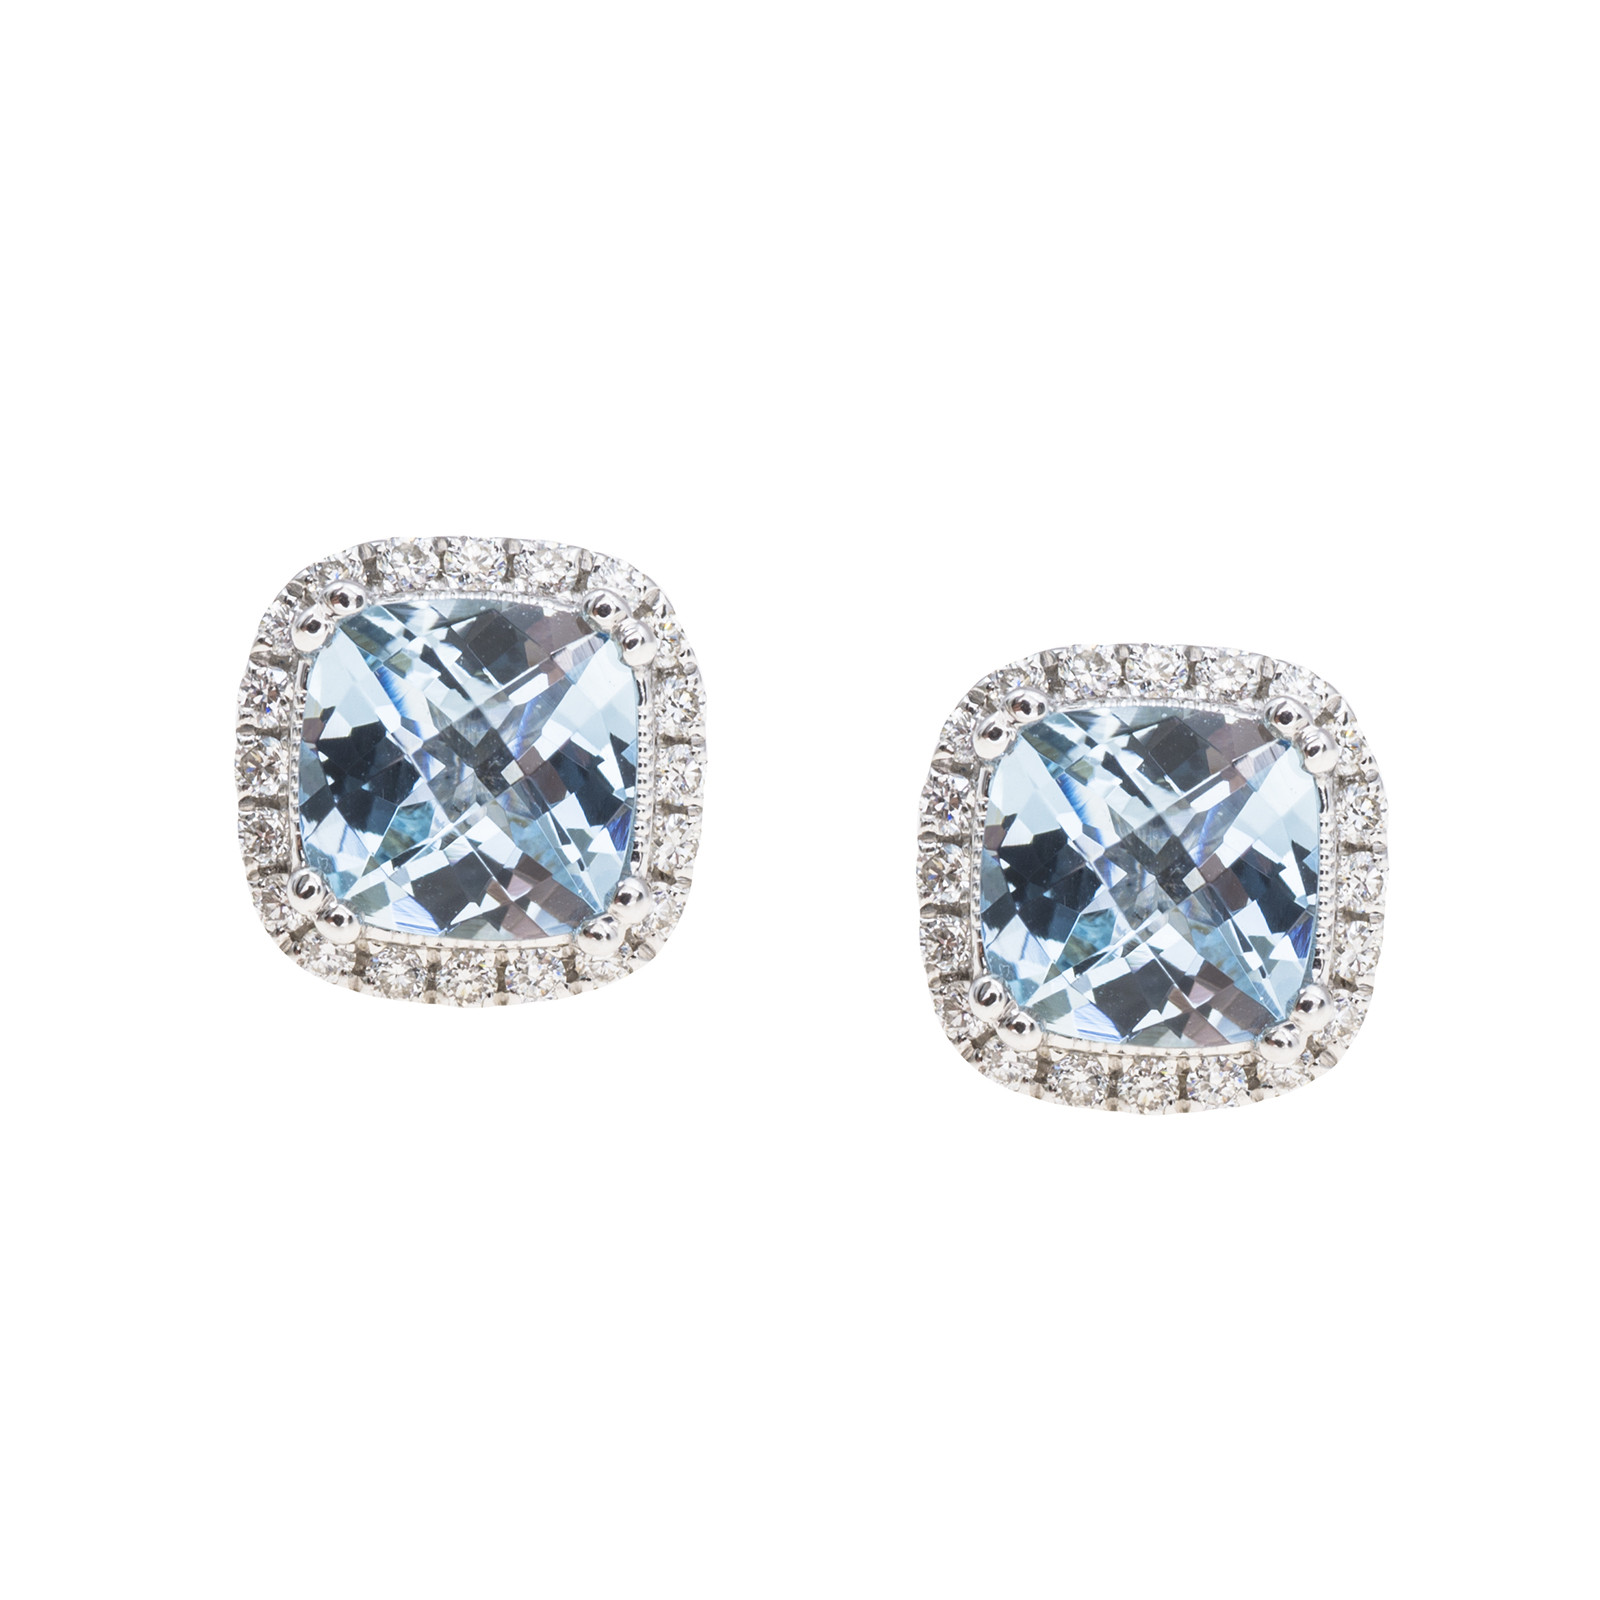 New 1.91 CTW Aquamarine & Diamond Stud Earrings